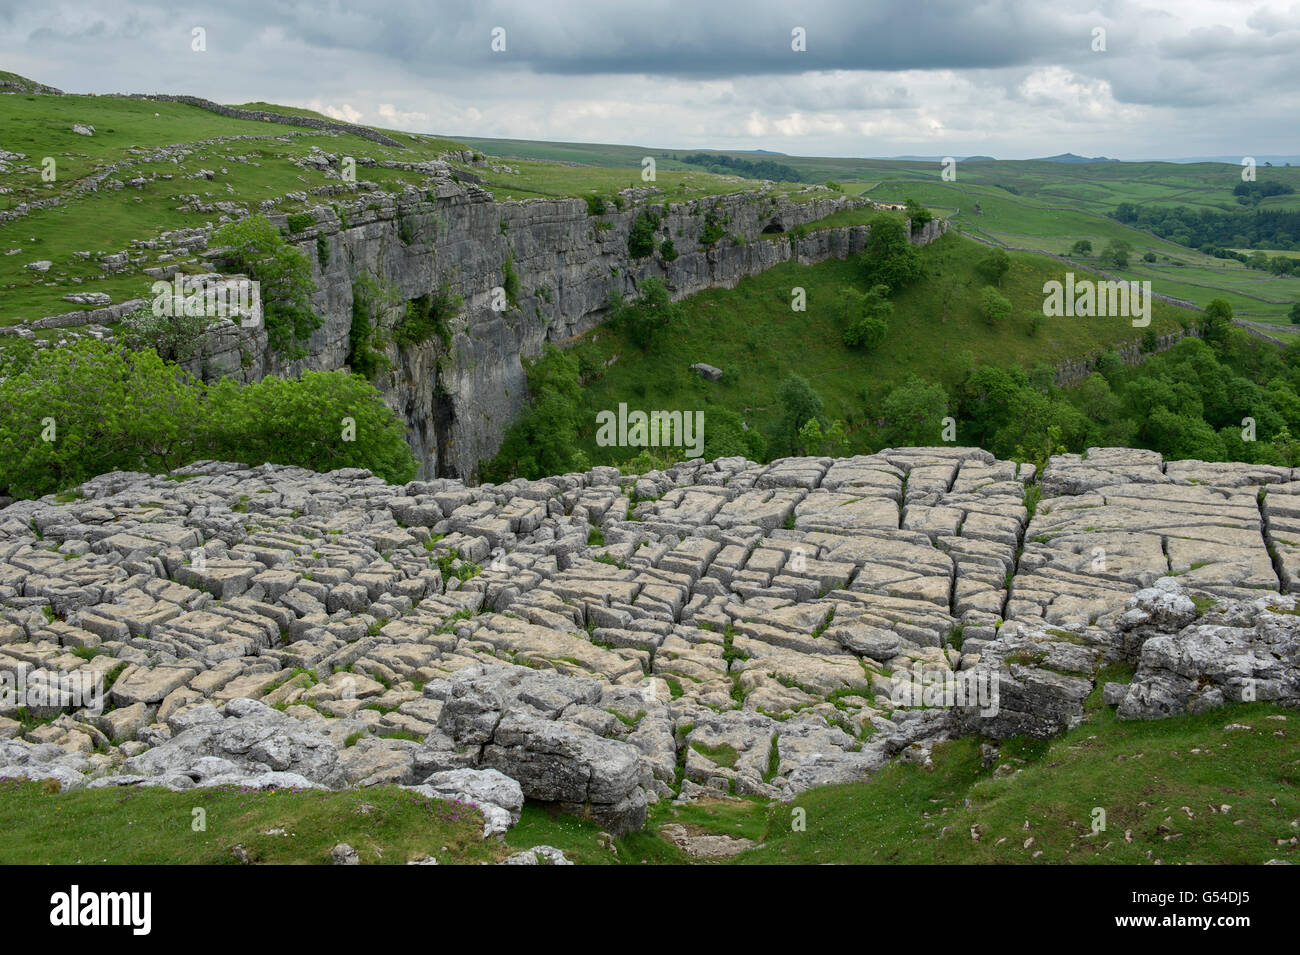 Limestone pavement at top of Malham Cove, Yorkshire Dales National Park, England, UK - Stock Image